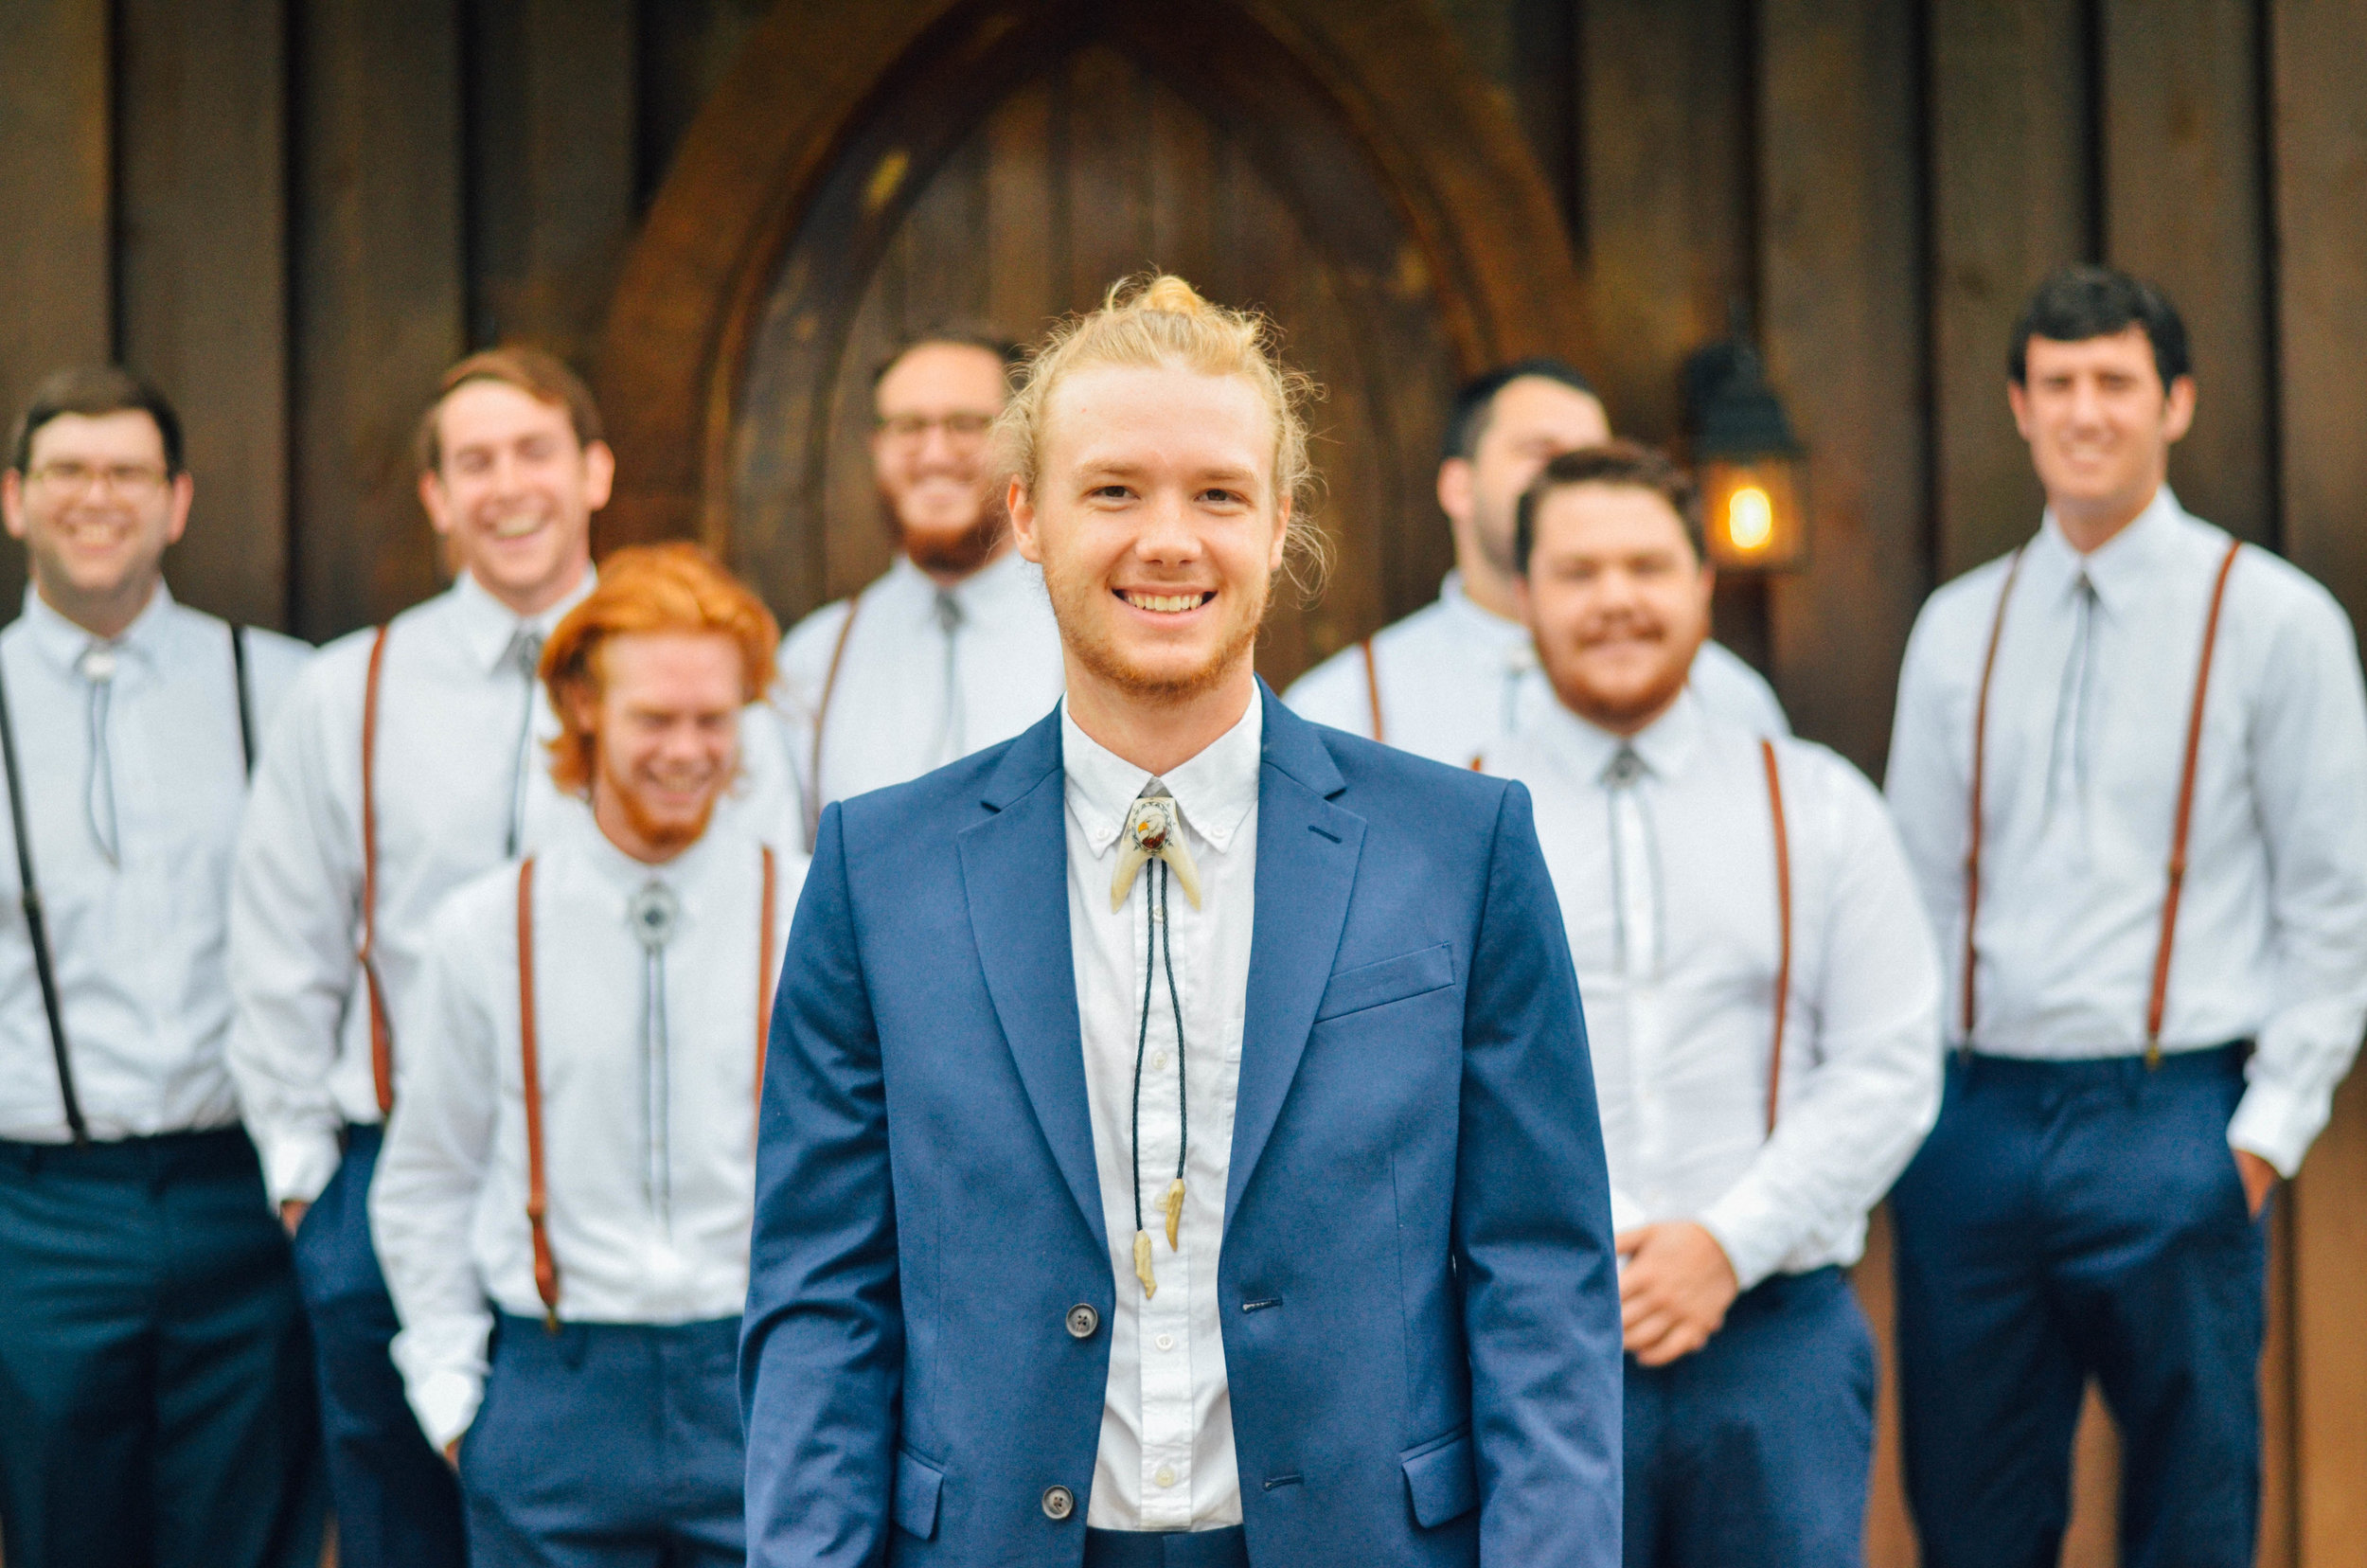 groom-groomsmen-greg-boulus-events-augusta-georgia